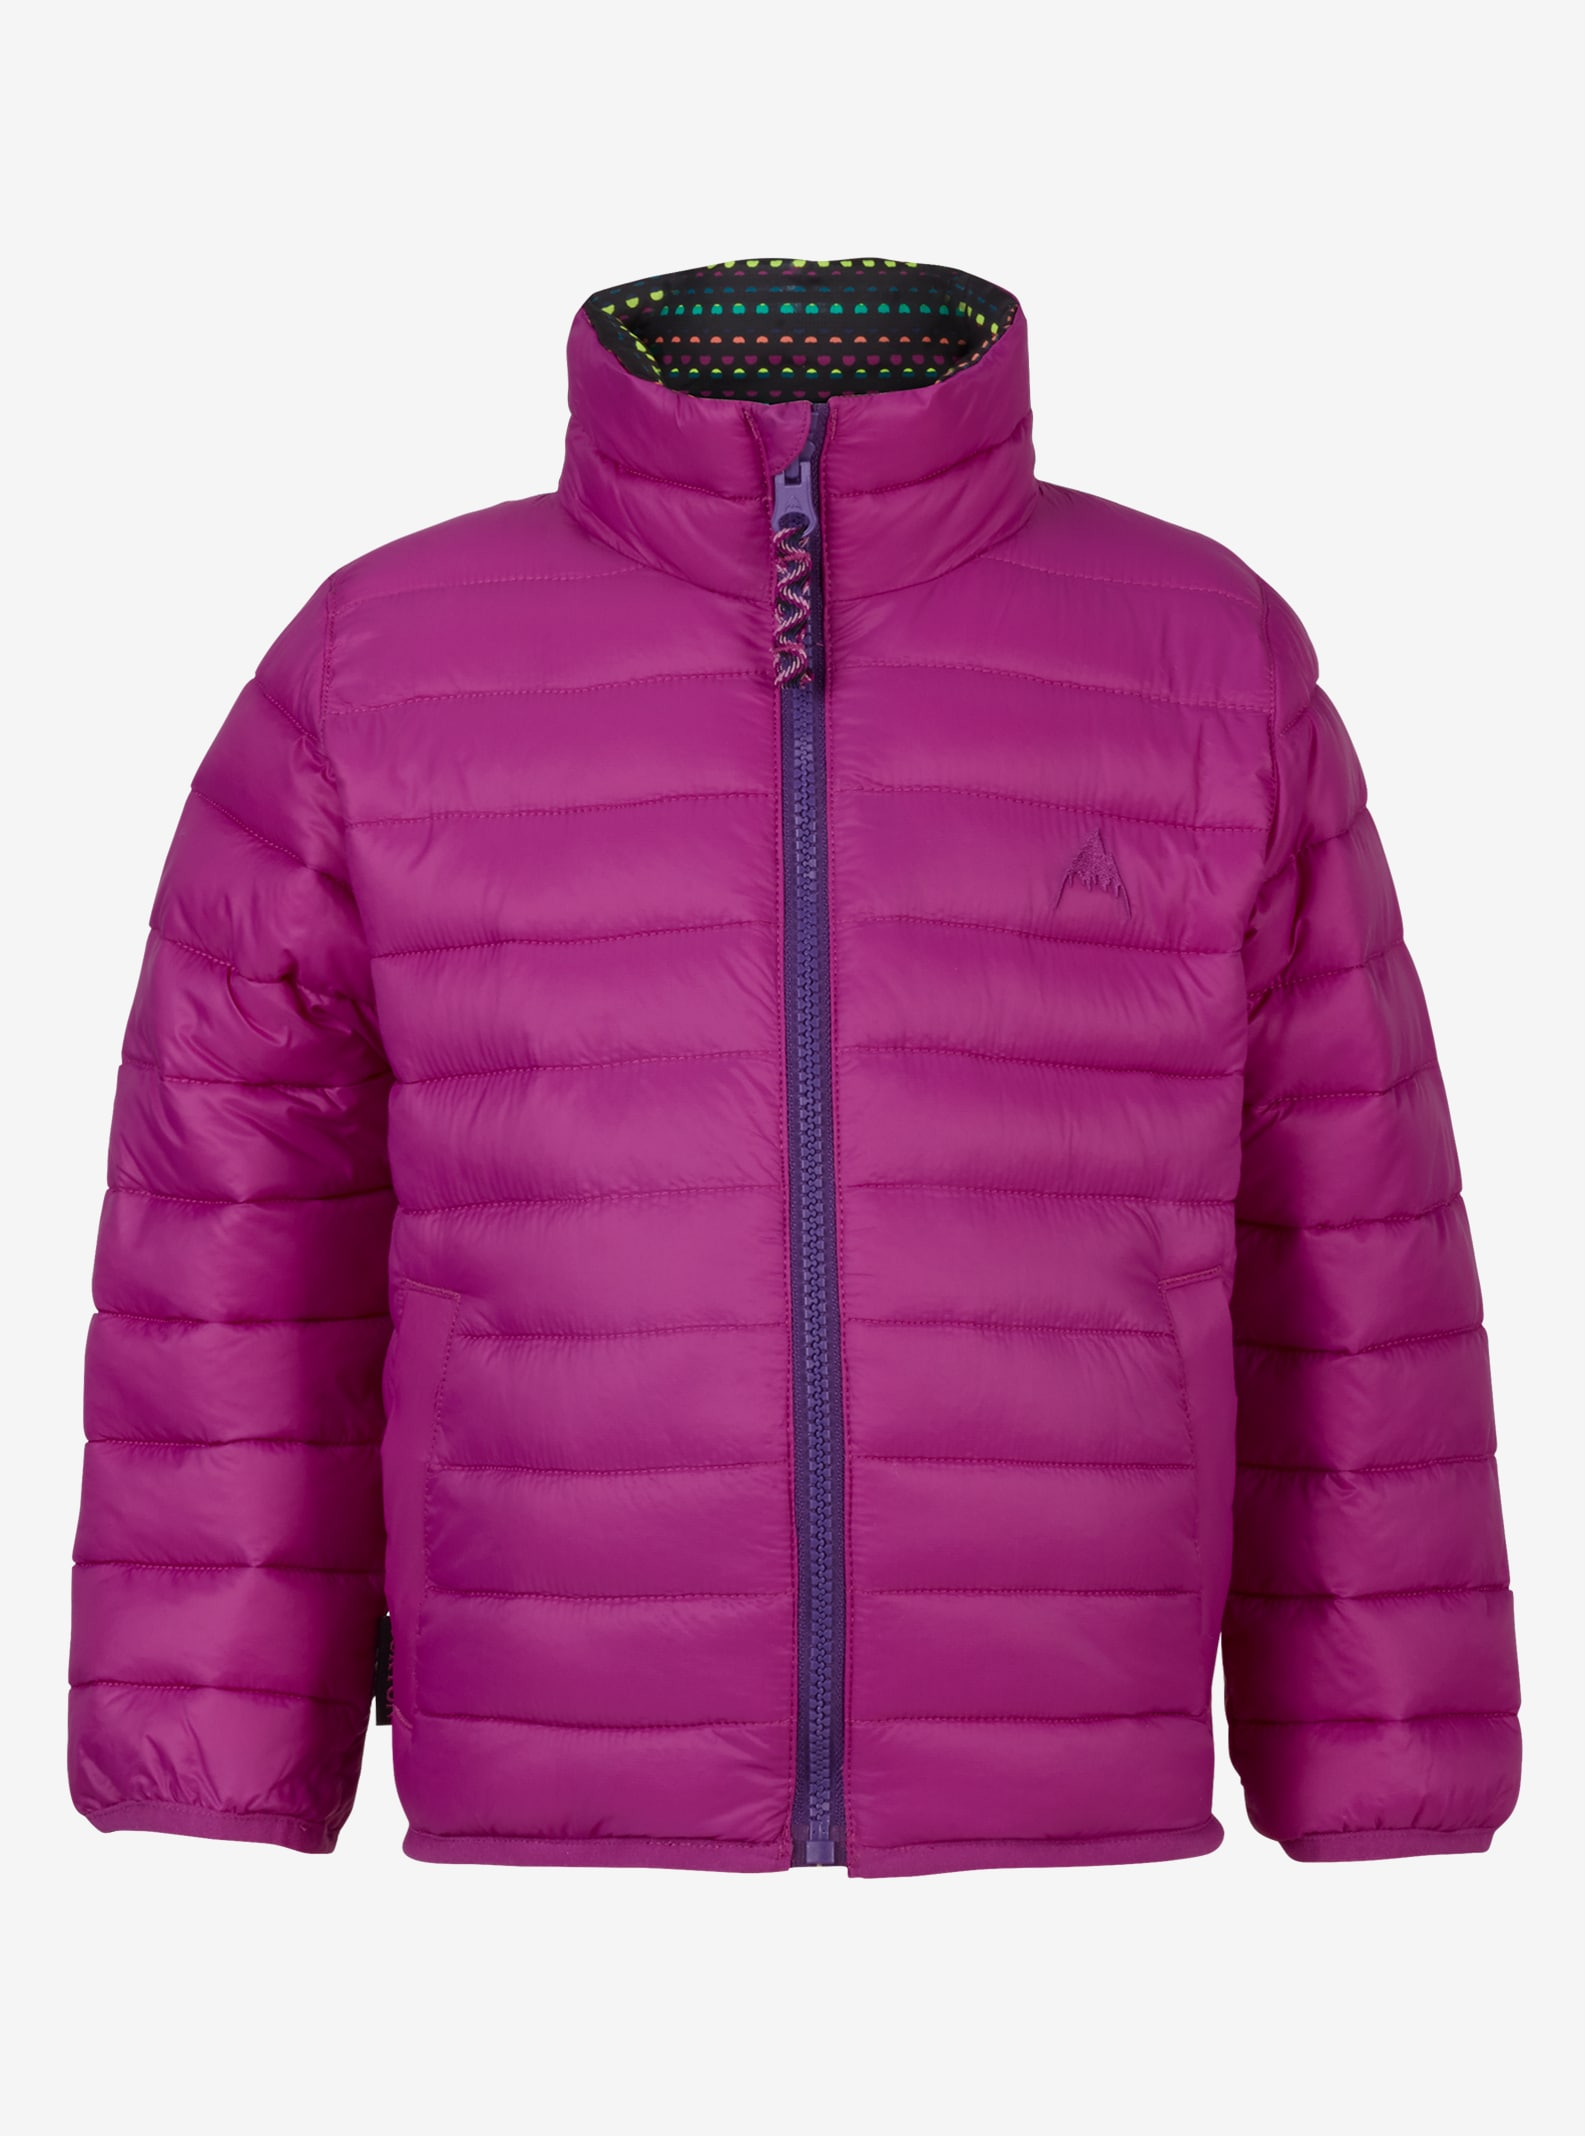 Kids' Burton Minishred Flex Puffy Jacket shown in Grapeseed / Candy Dots